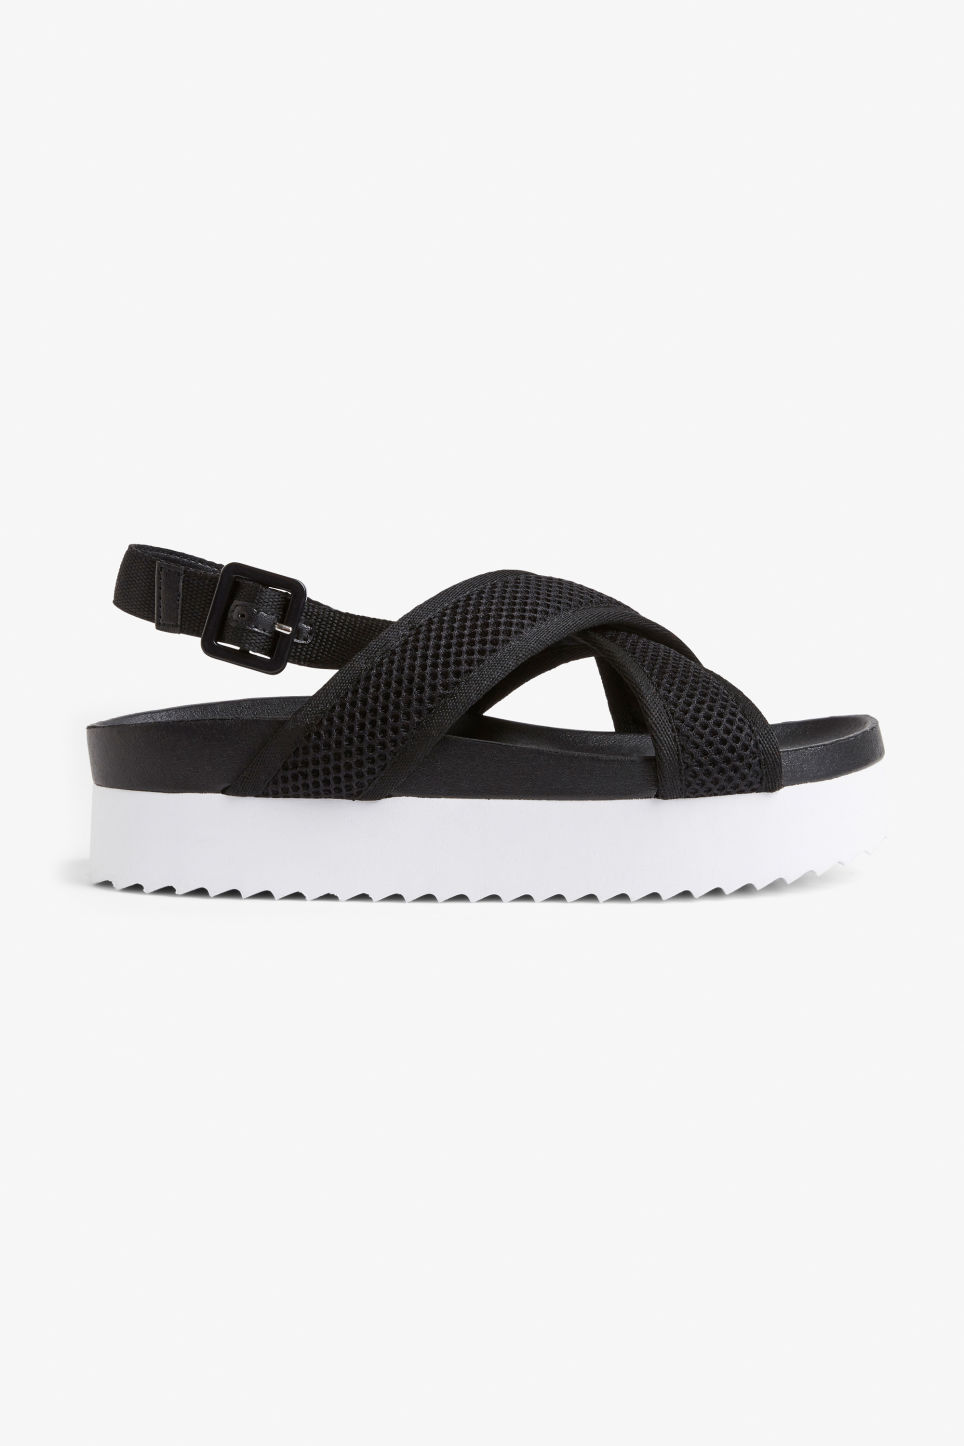 Detailed image of Monki sporty cross-strap sandals in black